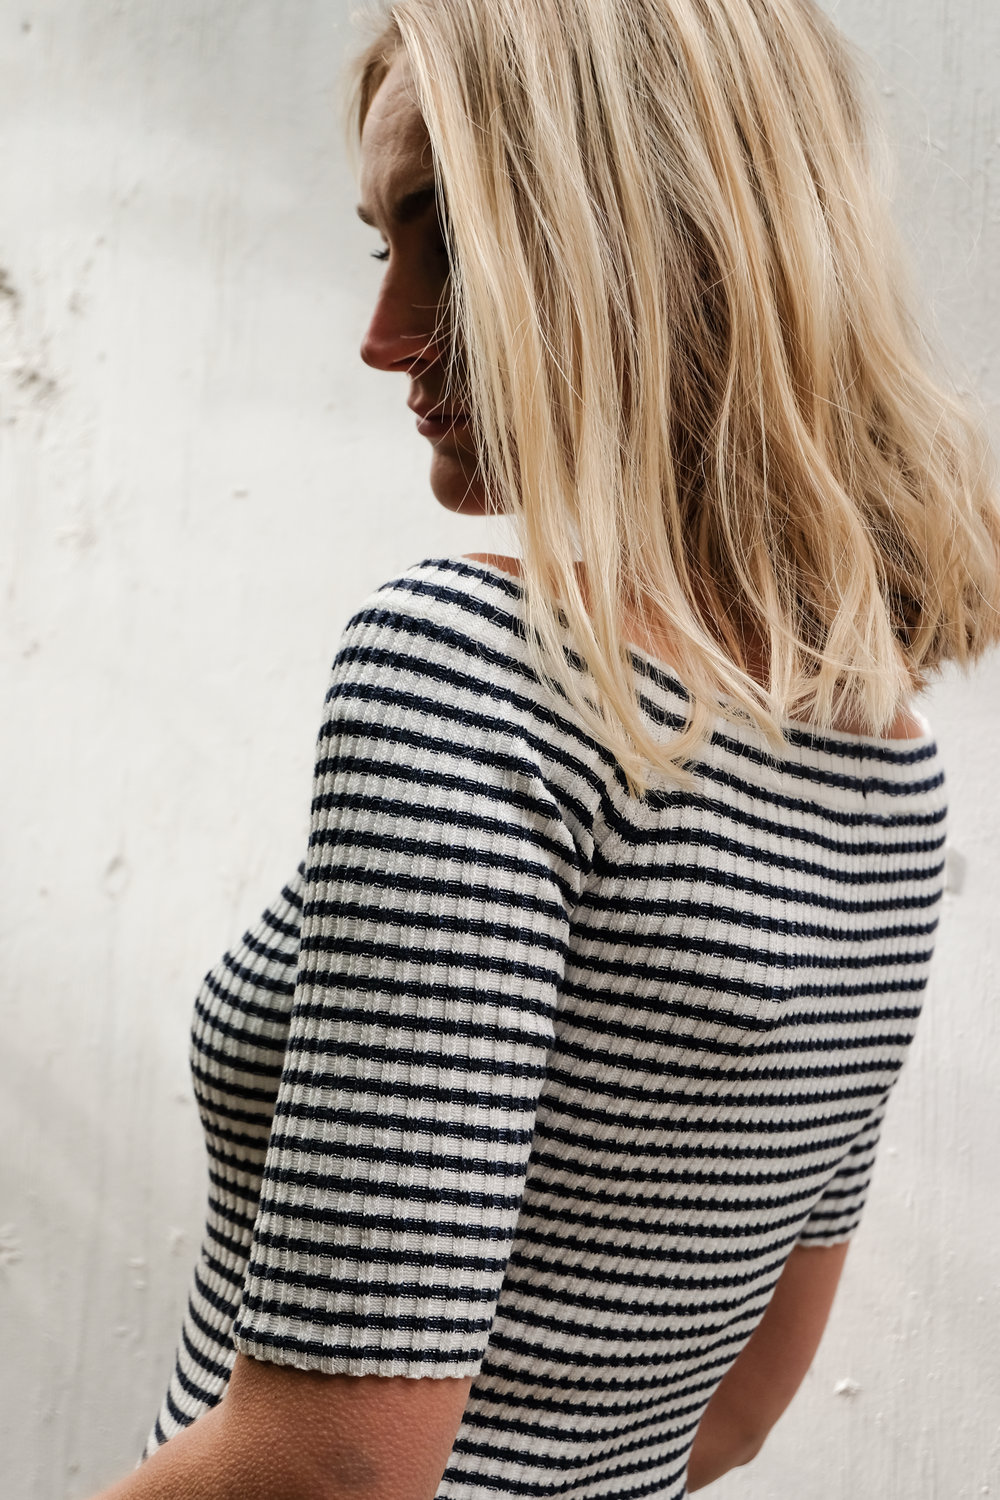 Daisy wears: Maia sweater | Made in Peru |  SHOP HERE